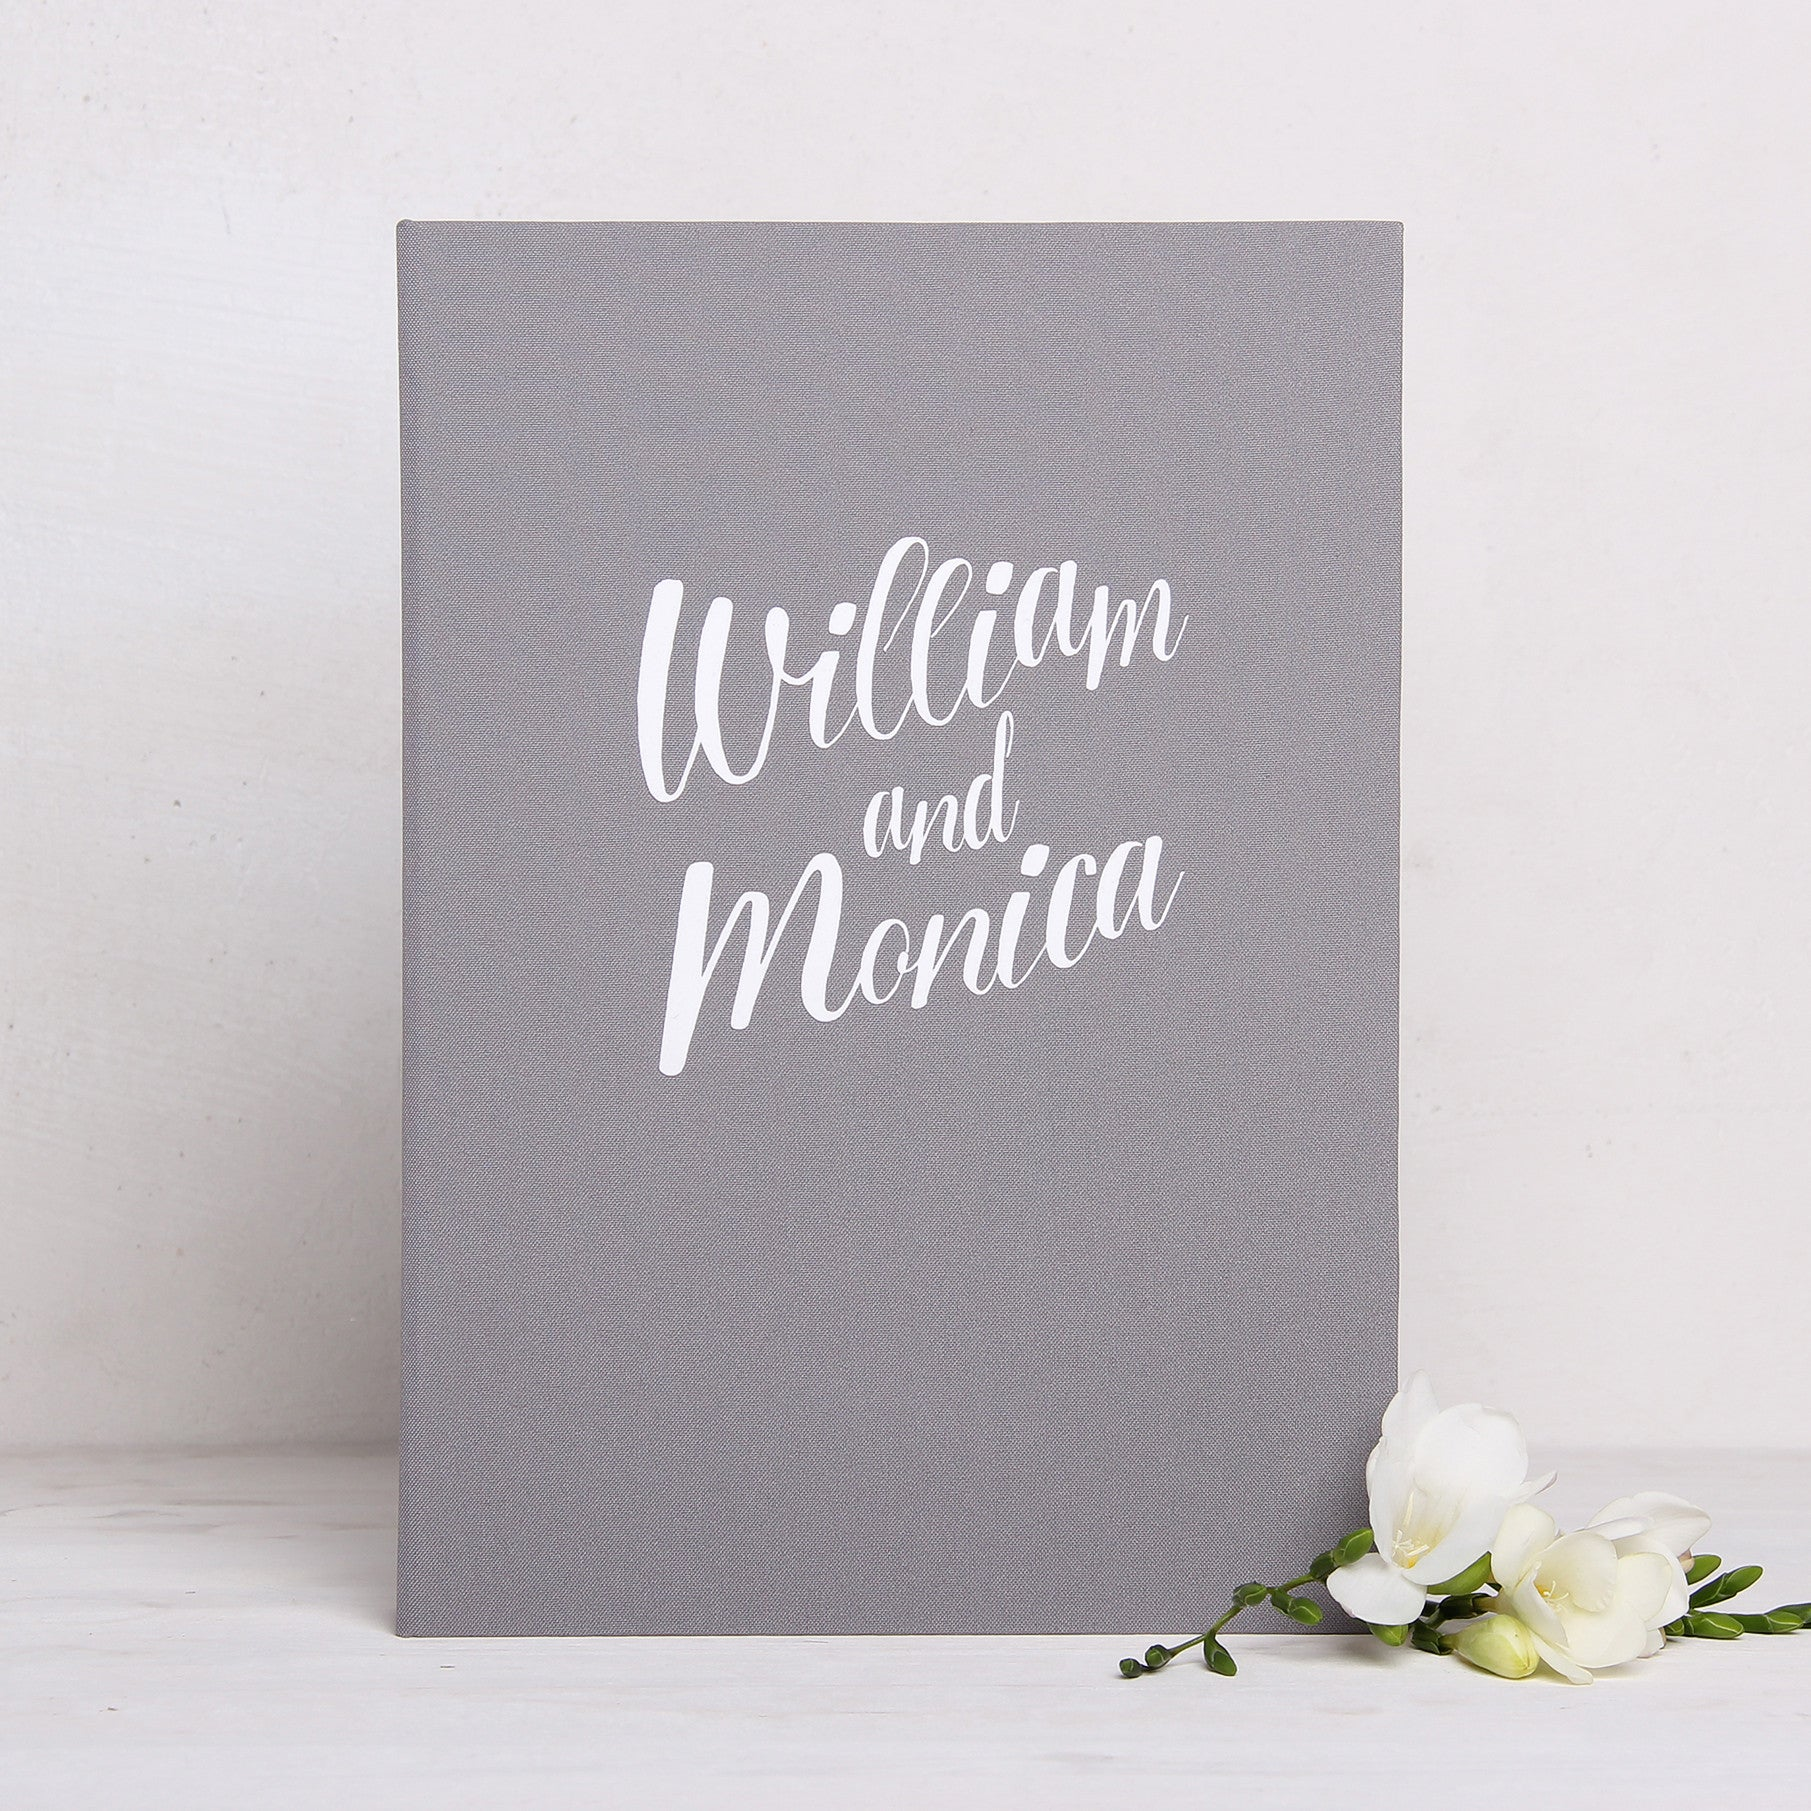 b49c2635bc48 Wedding Guest Book Birthday Album Instant Gray with White Lettering by  Liumy - Liumy